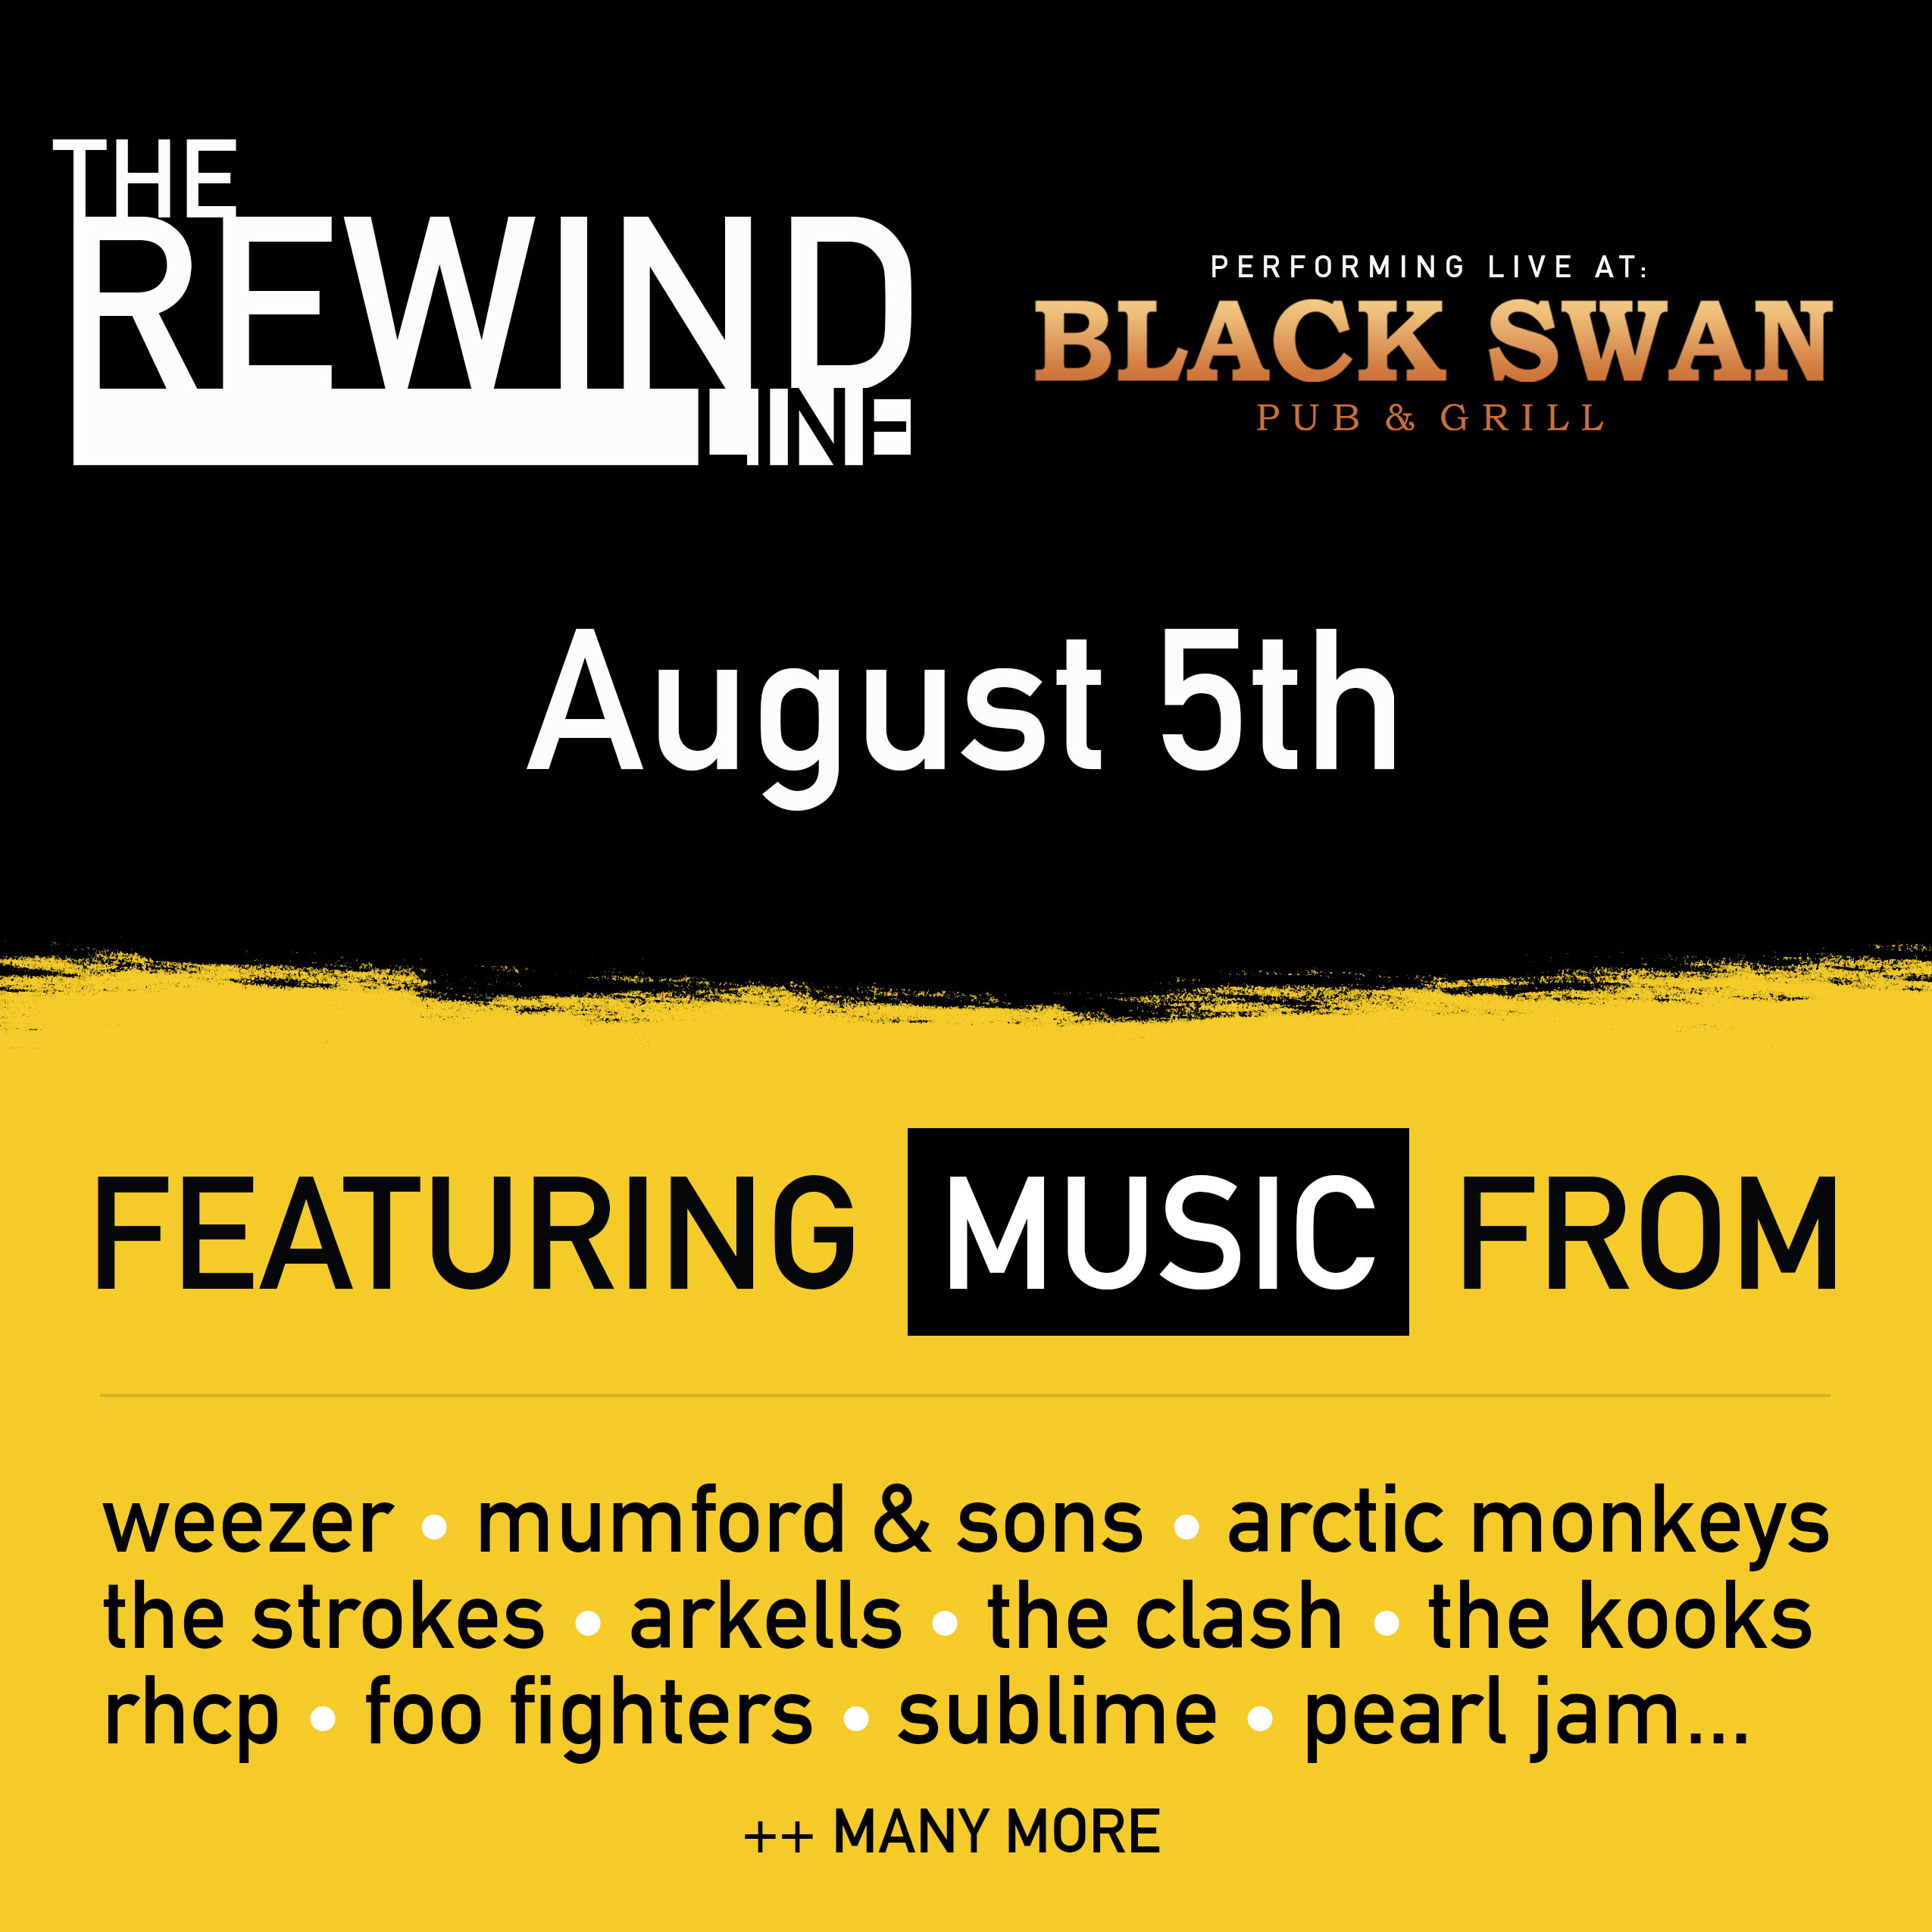 Aug 5, 2016 Black Swanpromo